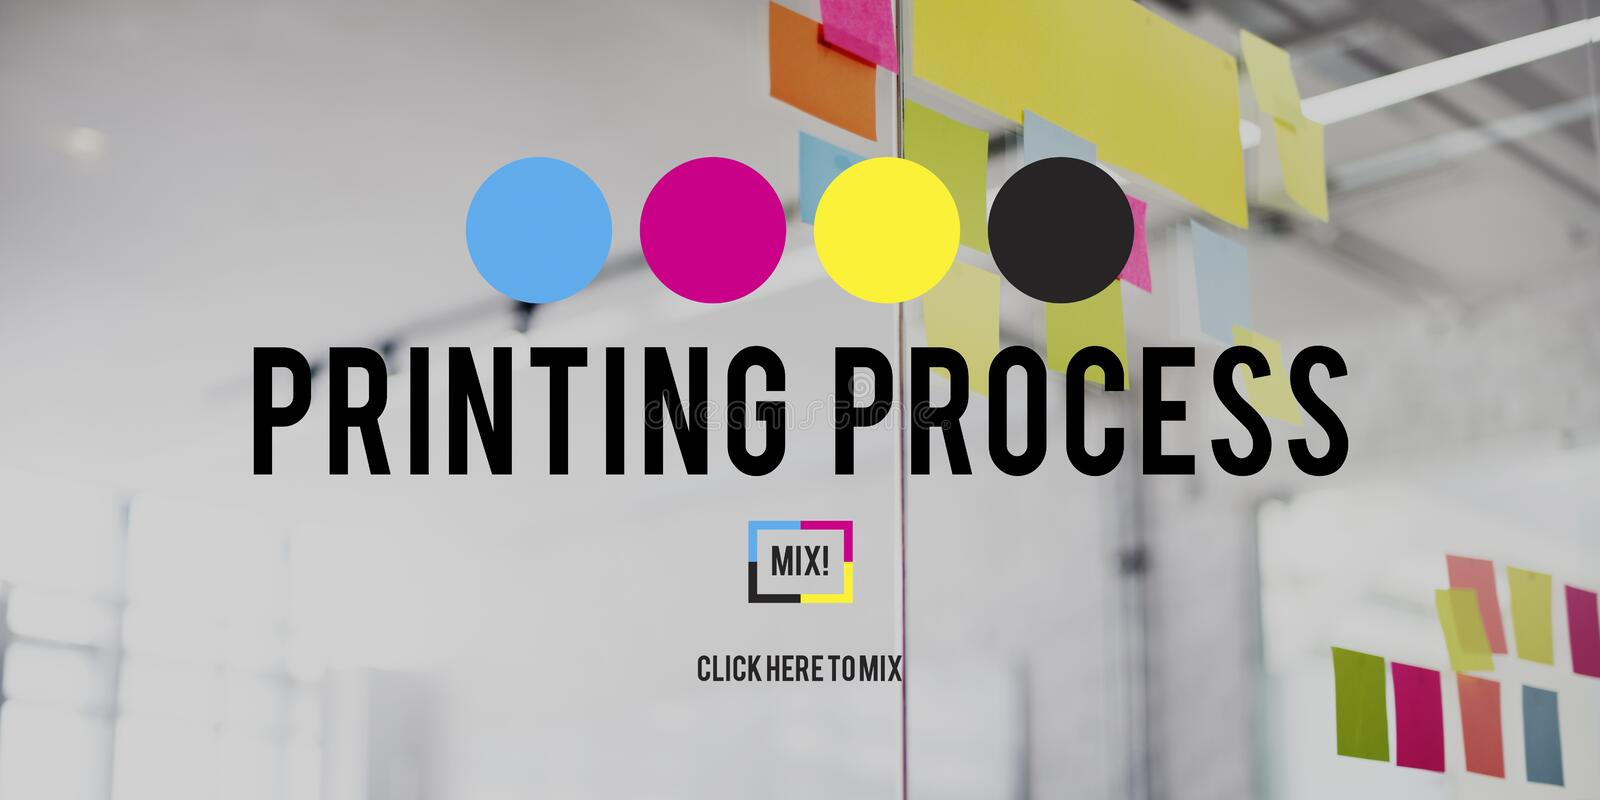 Printing Process CMYK Cyan Magenta Yellow Key Concept royalty free stock images